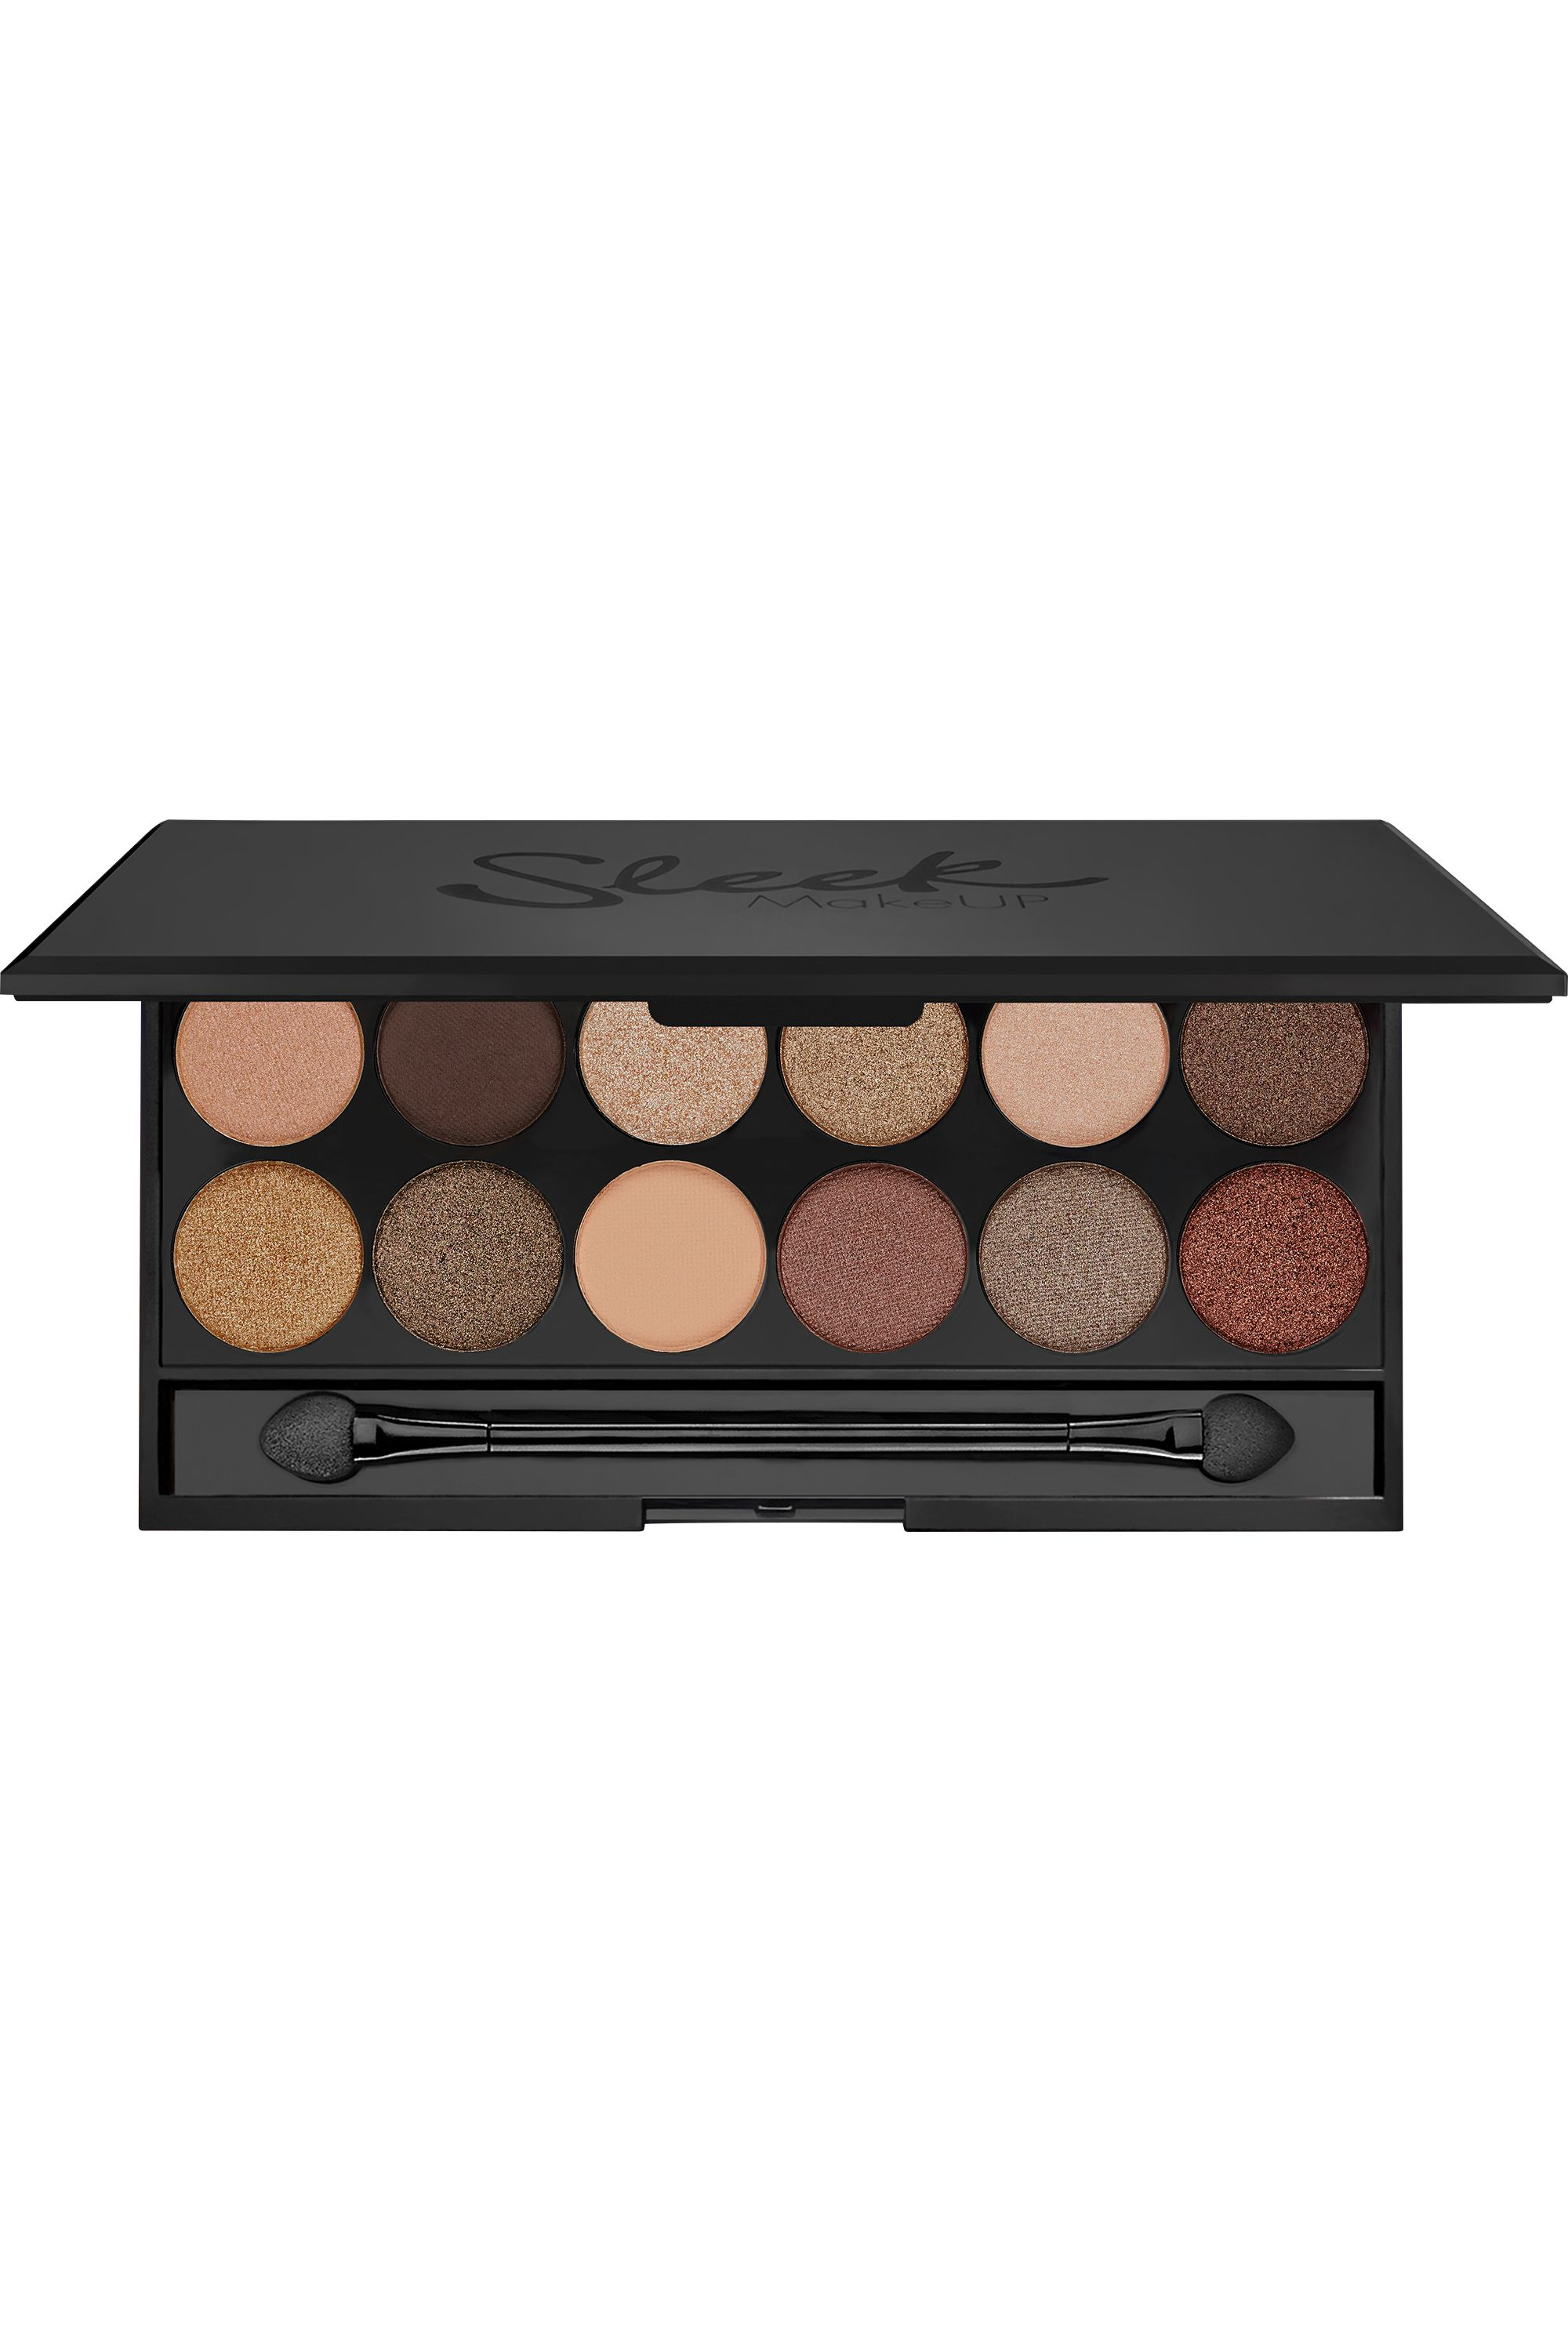 Blissim : Sleek MakeUP - Palette de fards à paupières i-Divine - All Night Long